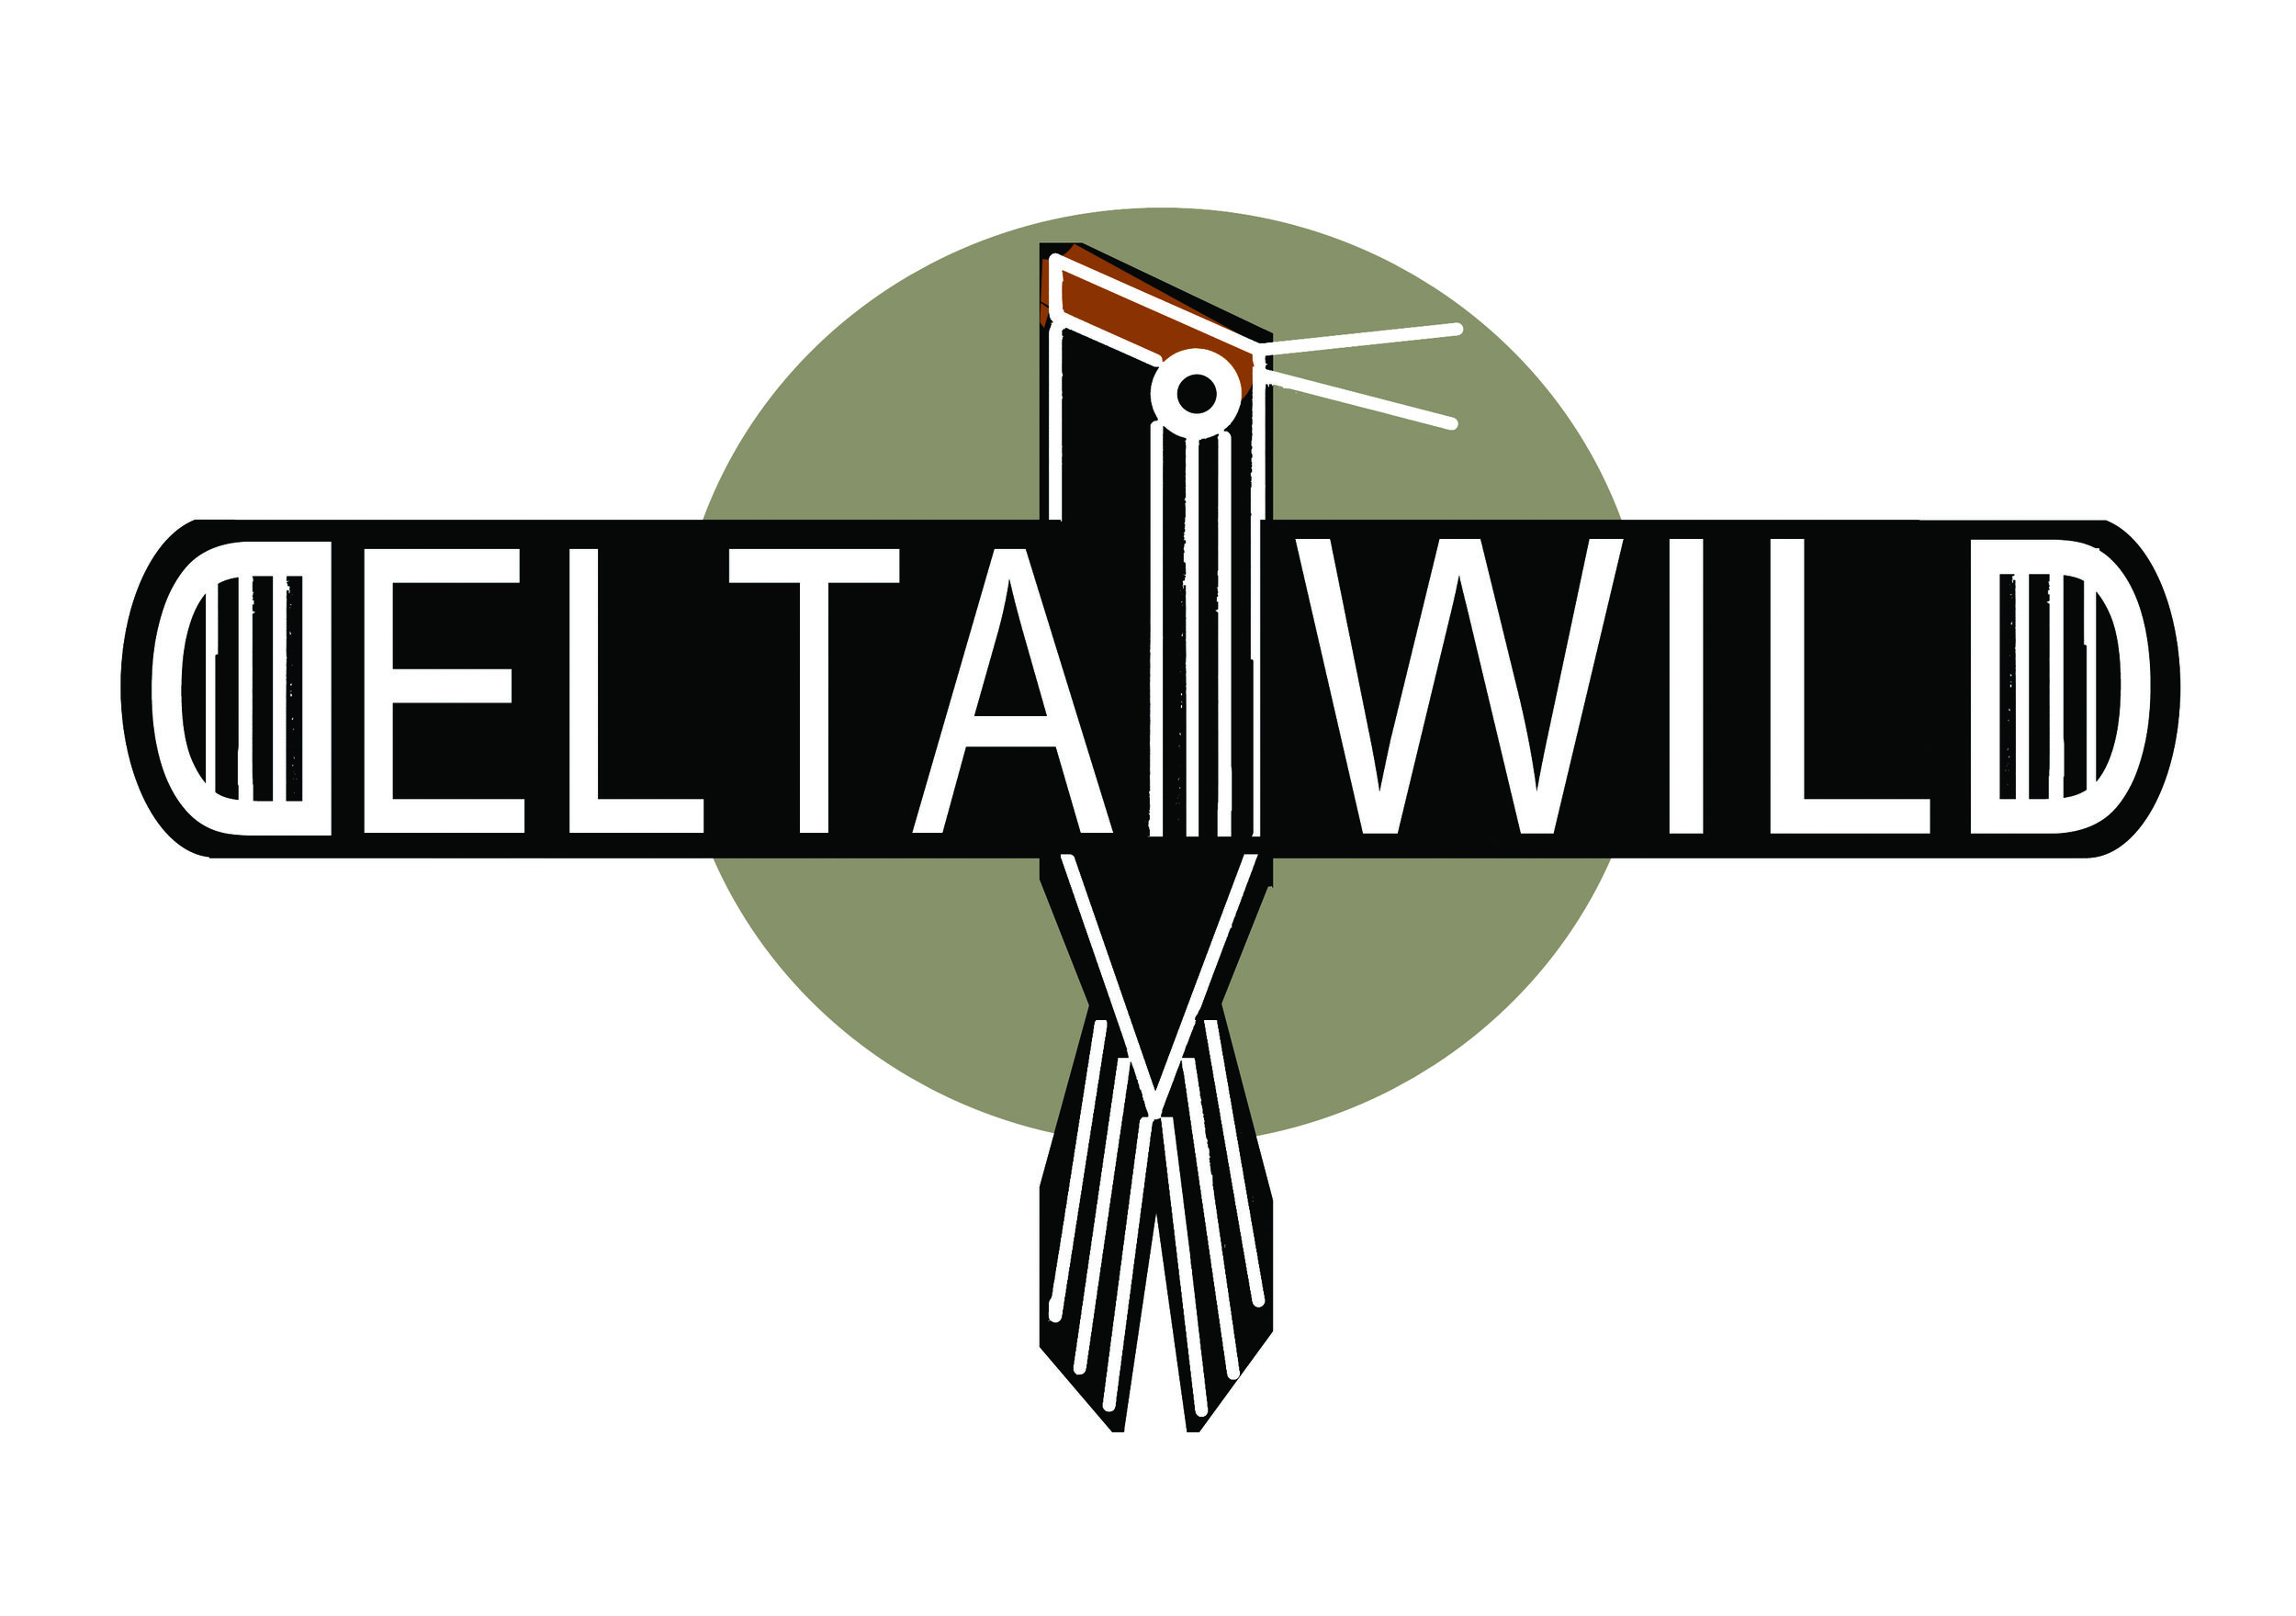 delta wild logo_clean edges.jpg